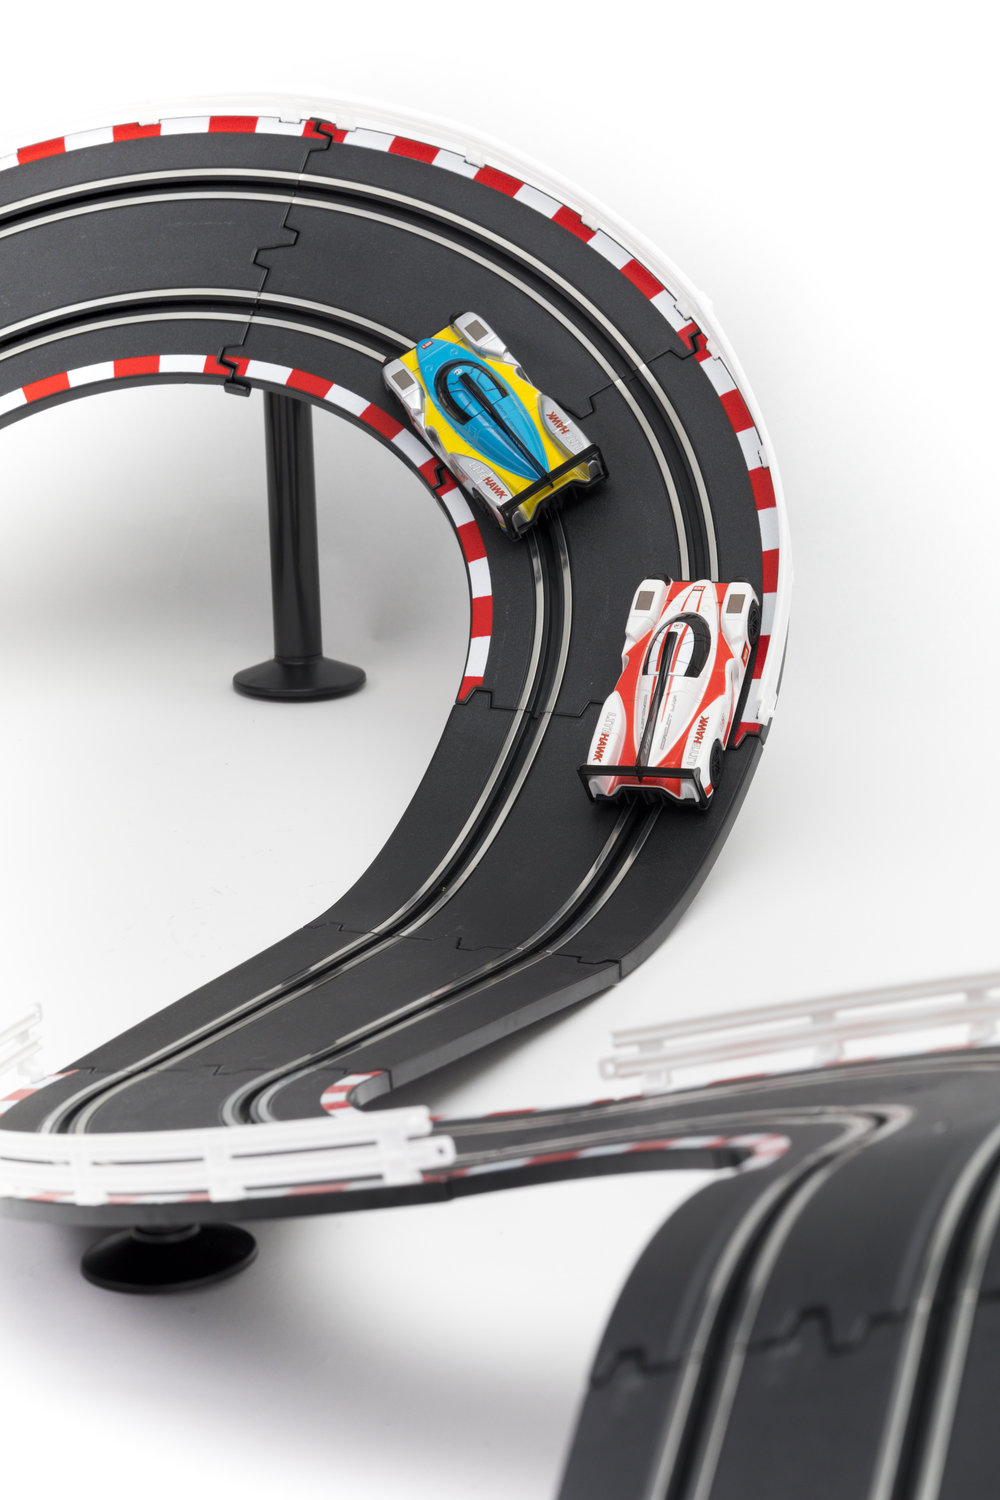 Precision Driving at its Best! - The LMP set set is built for fast overtaking action! Race around the track navigating tight turns and dramatic elevation changes!